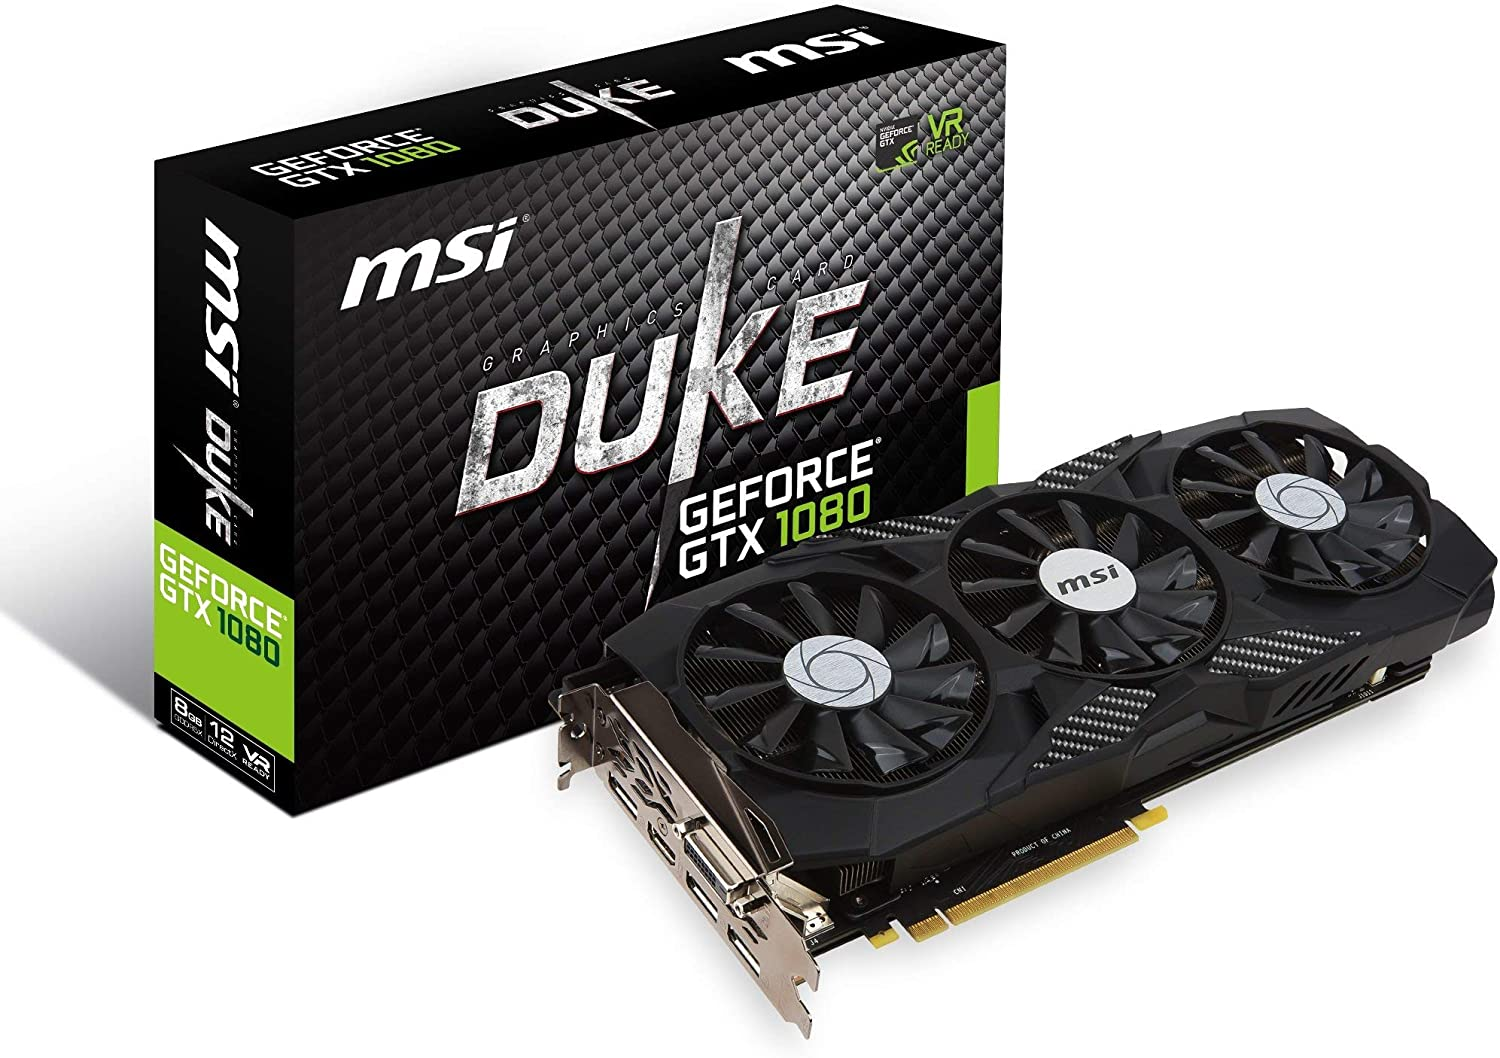 MSI Gaming GeForce GTX 1080 8GB GDDR5X SLI DirectX 12 VR Ready Graphics Card (GTX 1080 DUKE 8G OC) (Renewed)